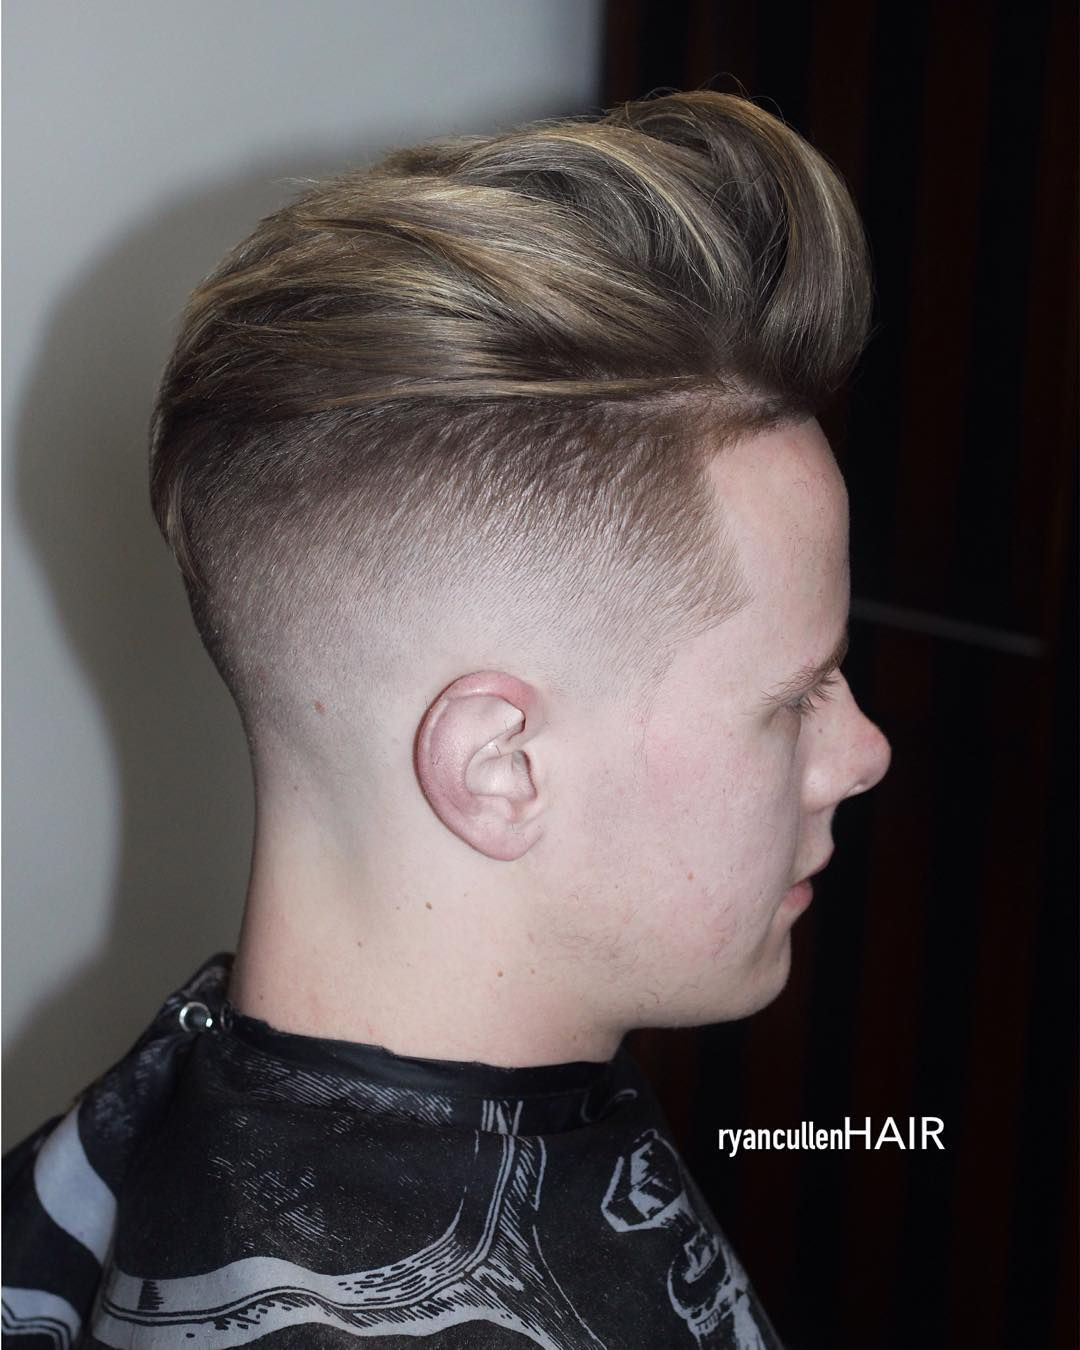 Haircut by ryancullenhair hair styling pinterest haircuts